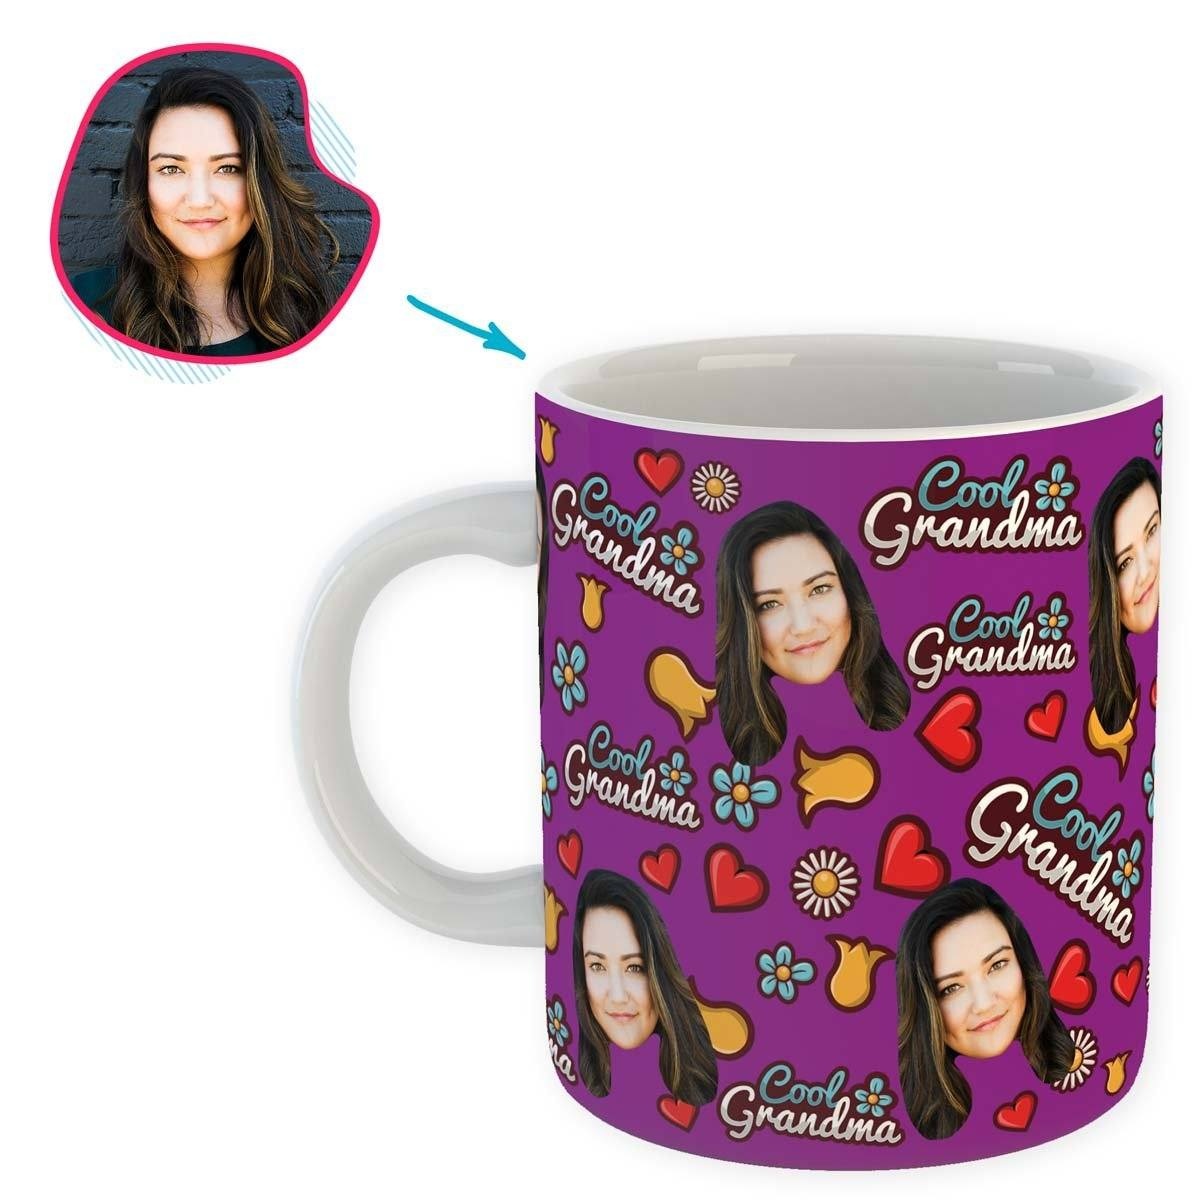 purple Cool Grandmother mug personalized with photo of face printed on it